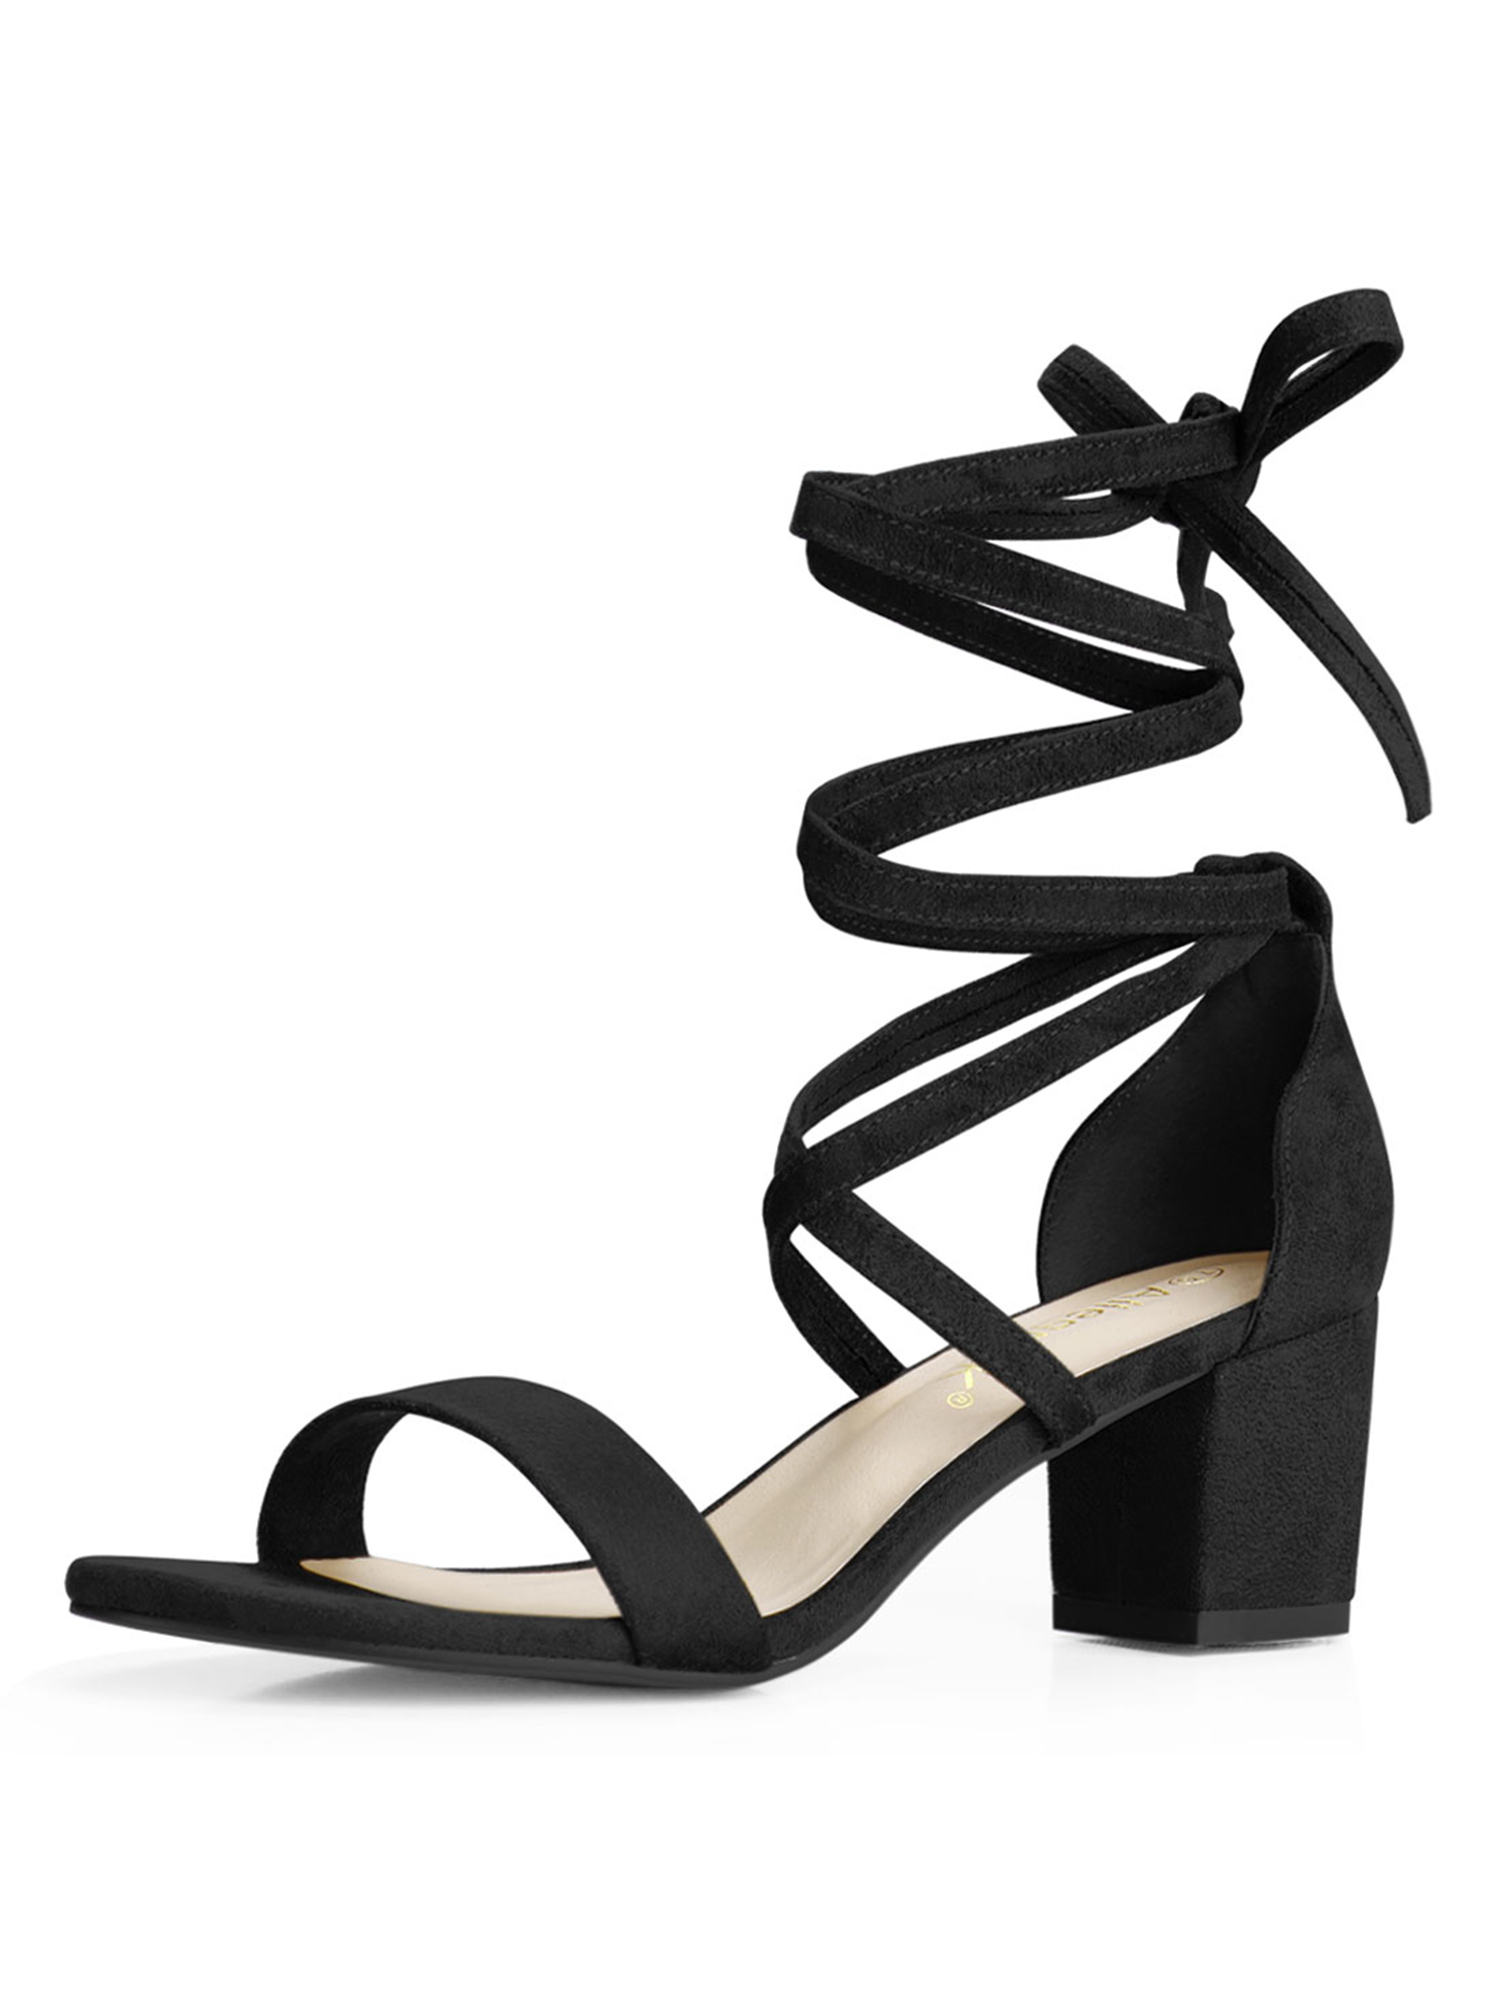 Unique Bargains Women s Lace Up Open Toe Mid Chunky Heeled ...